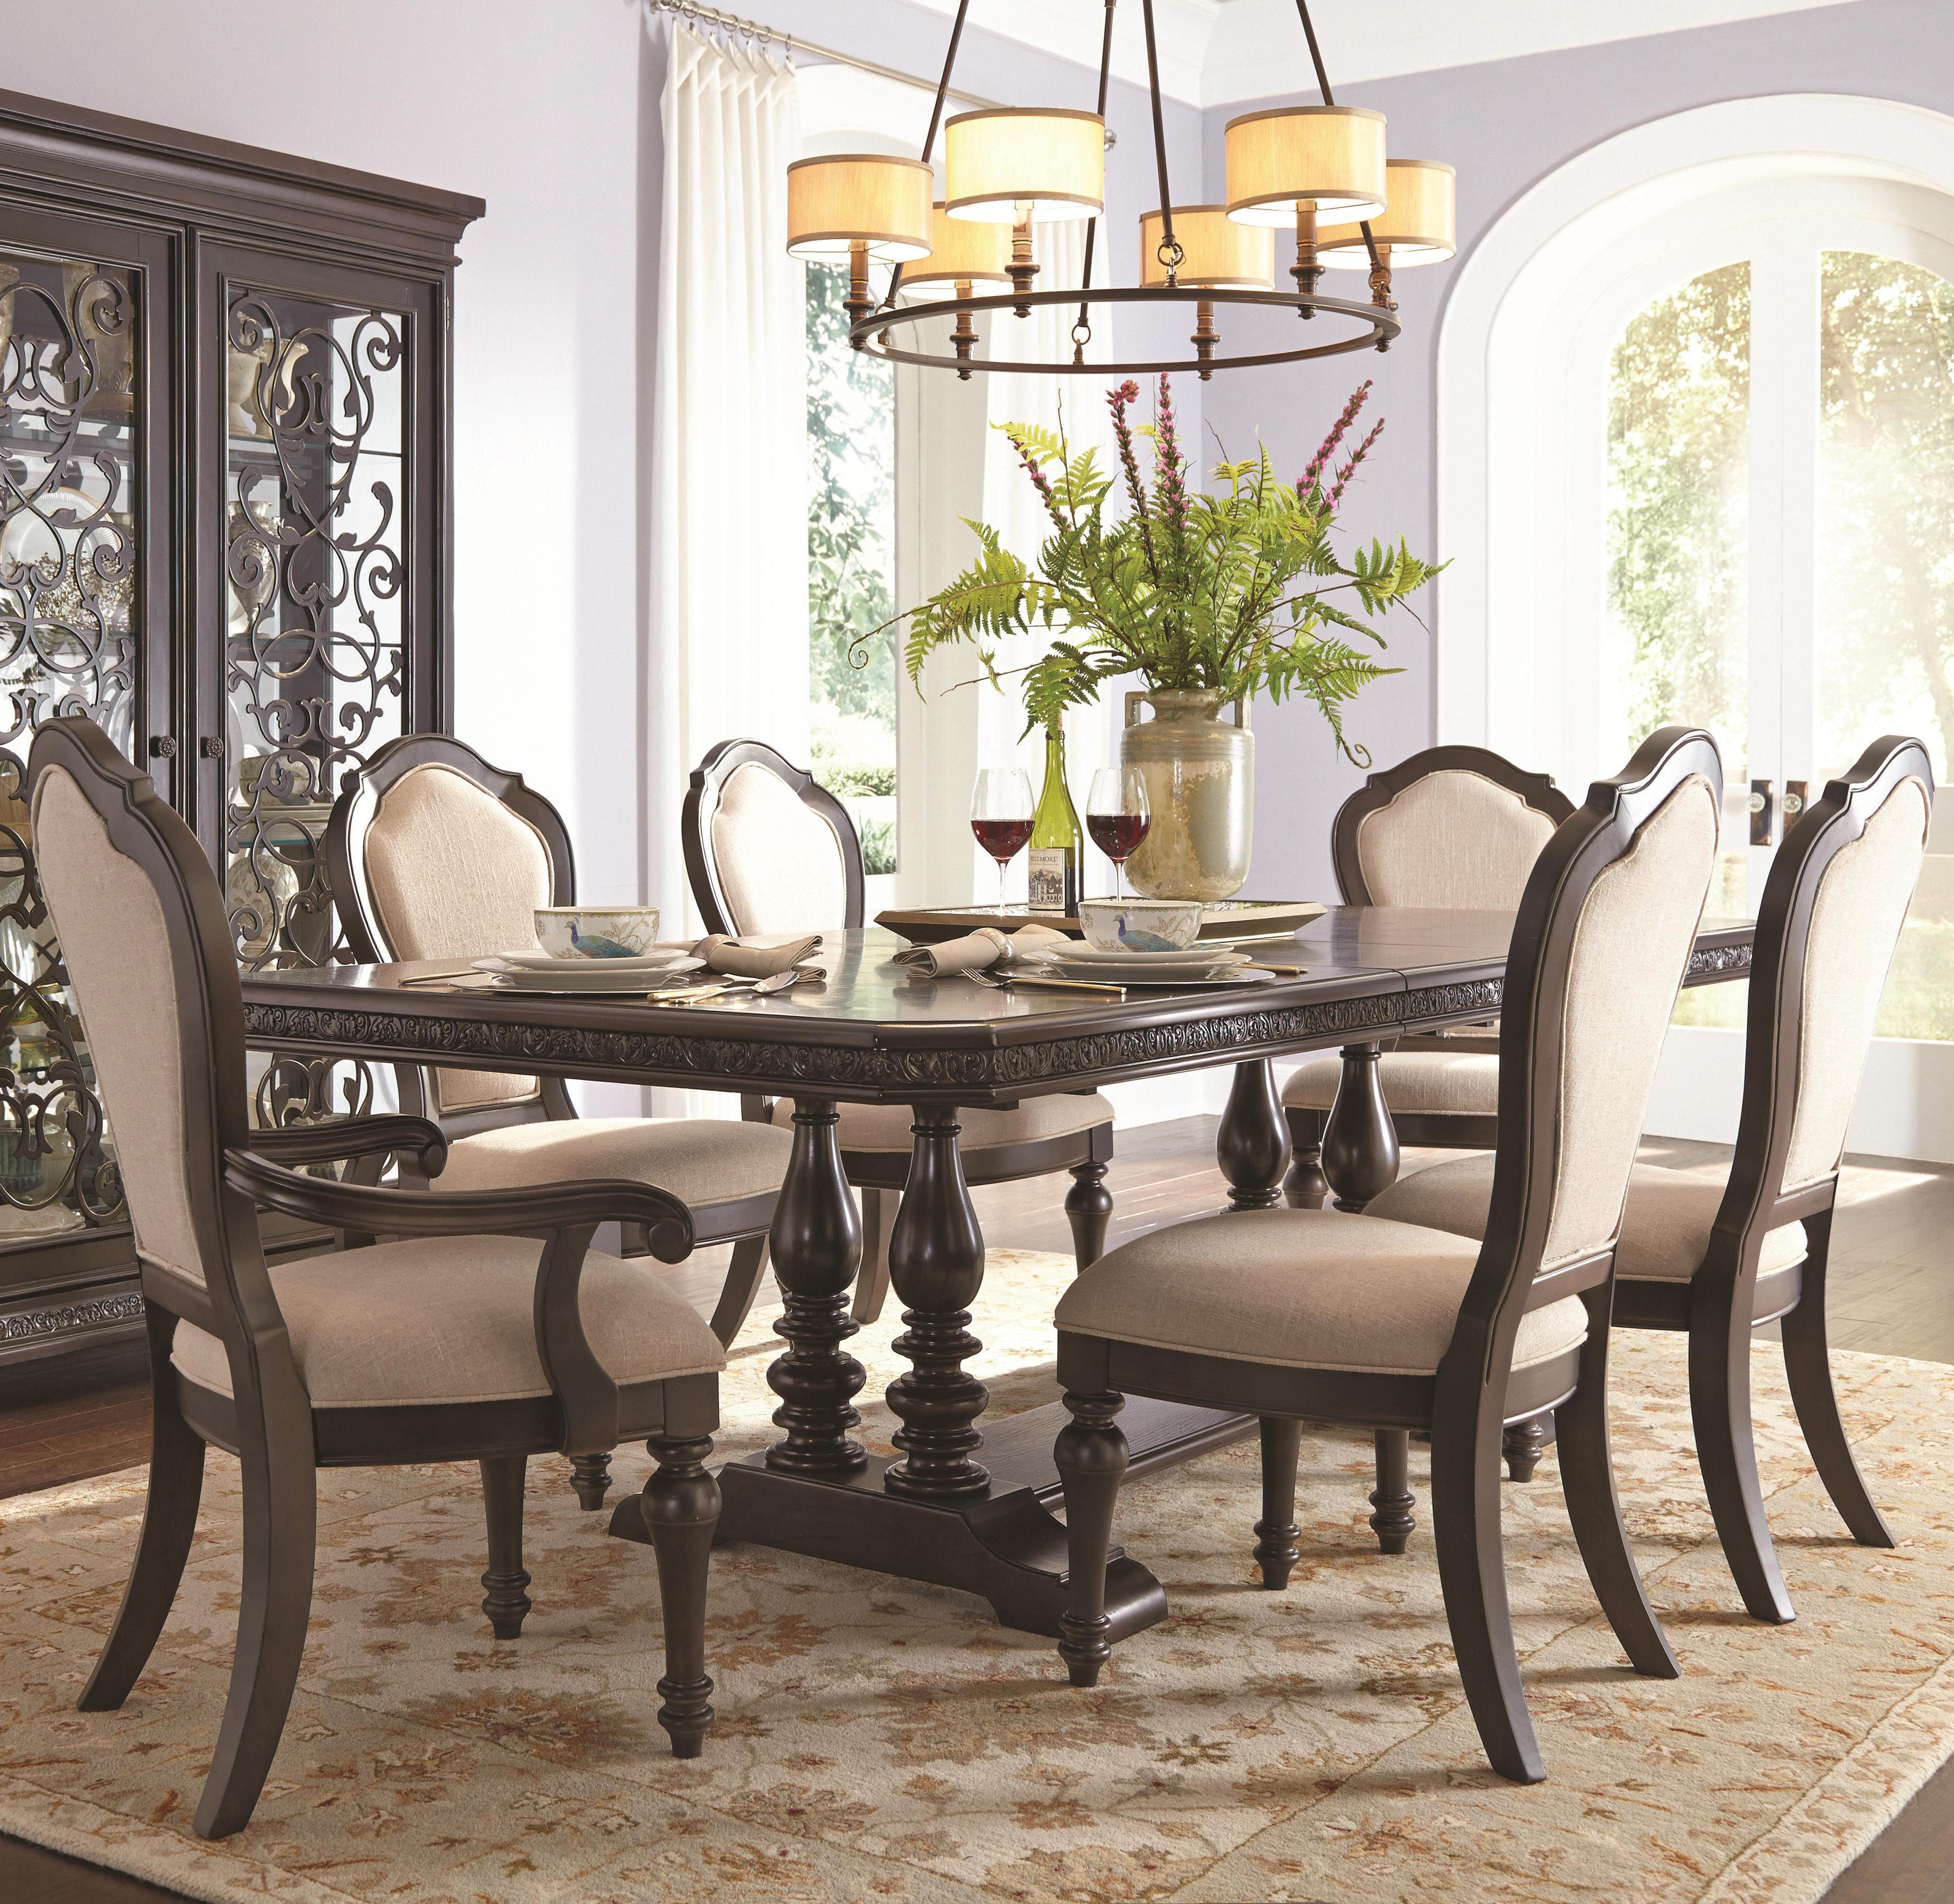 Samuel Lawrence Monarch Table & Chair Set - Item Number: 8794-131A+B+2x155+4x154